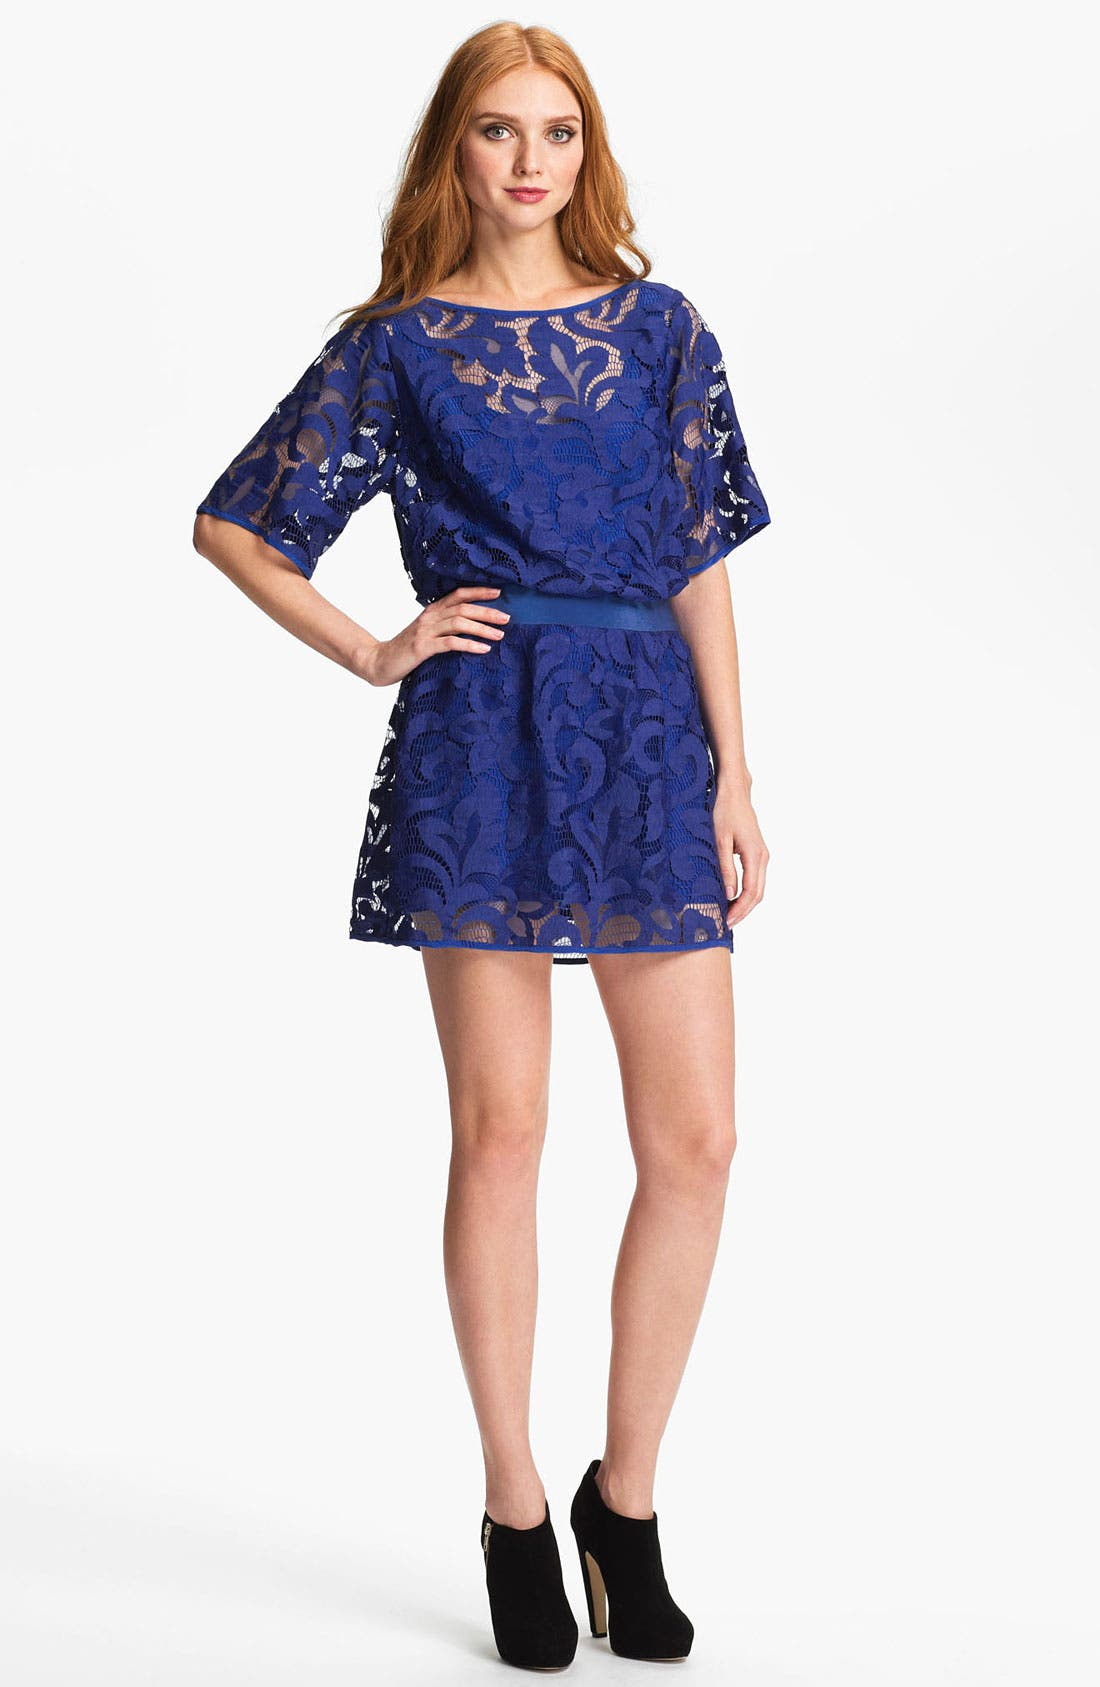 Alternate Image 1 Selected - Milly Lace Blouson Minidress